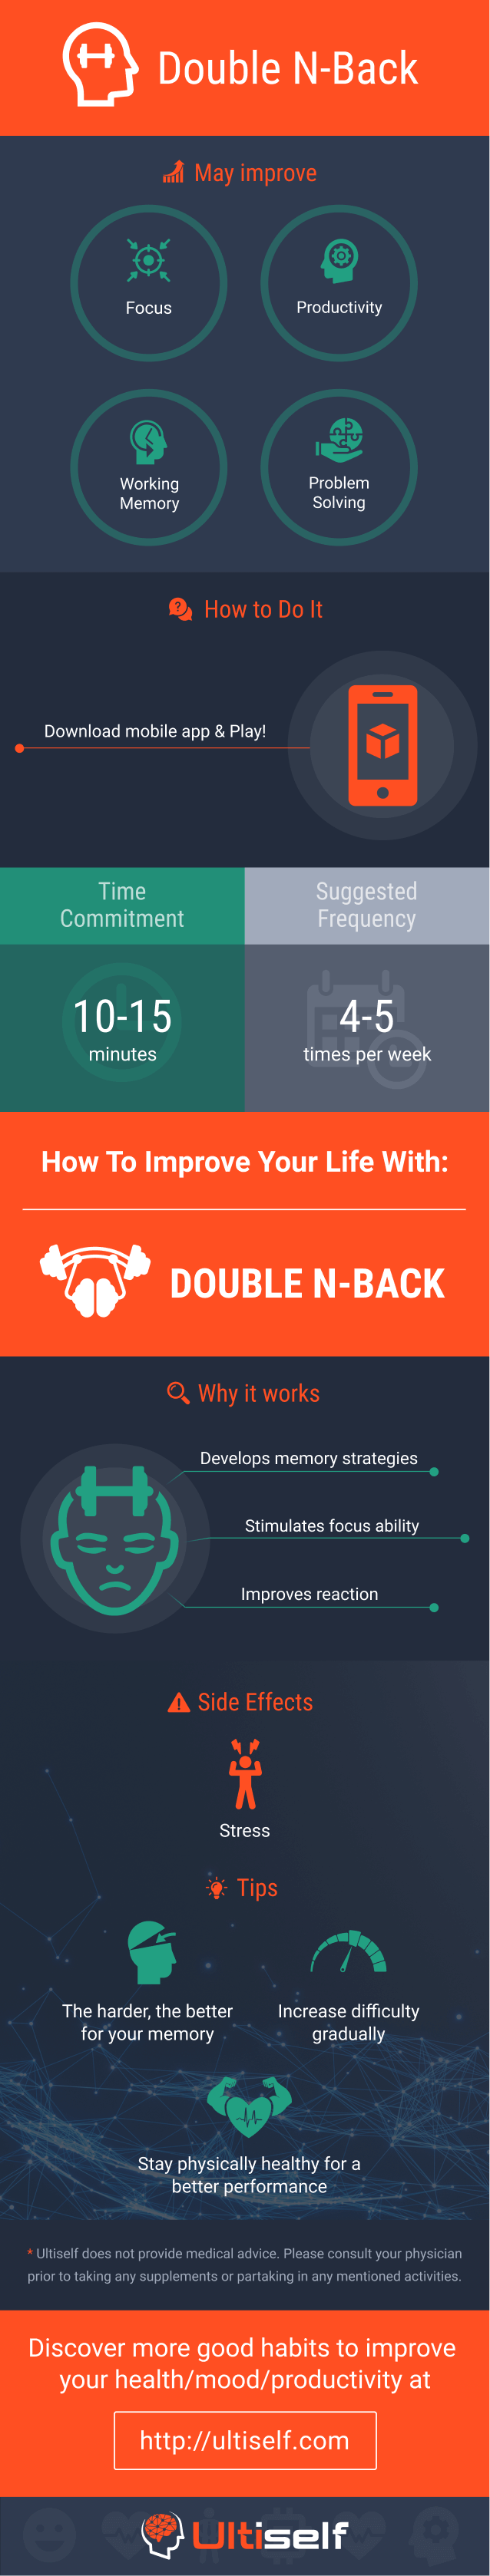 Double N-Back infographic